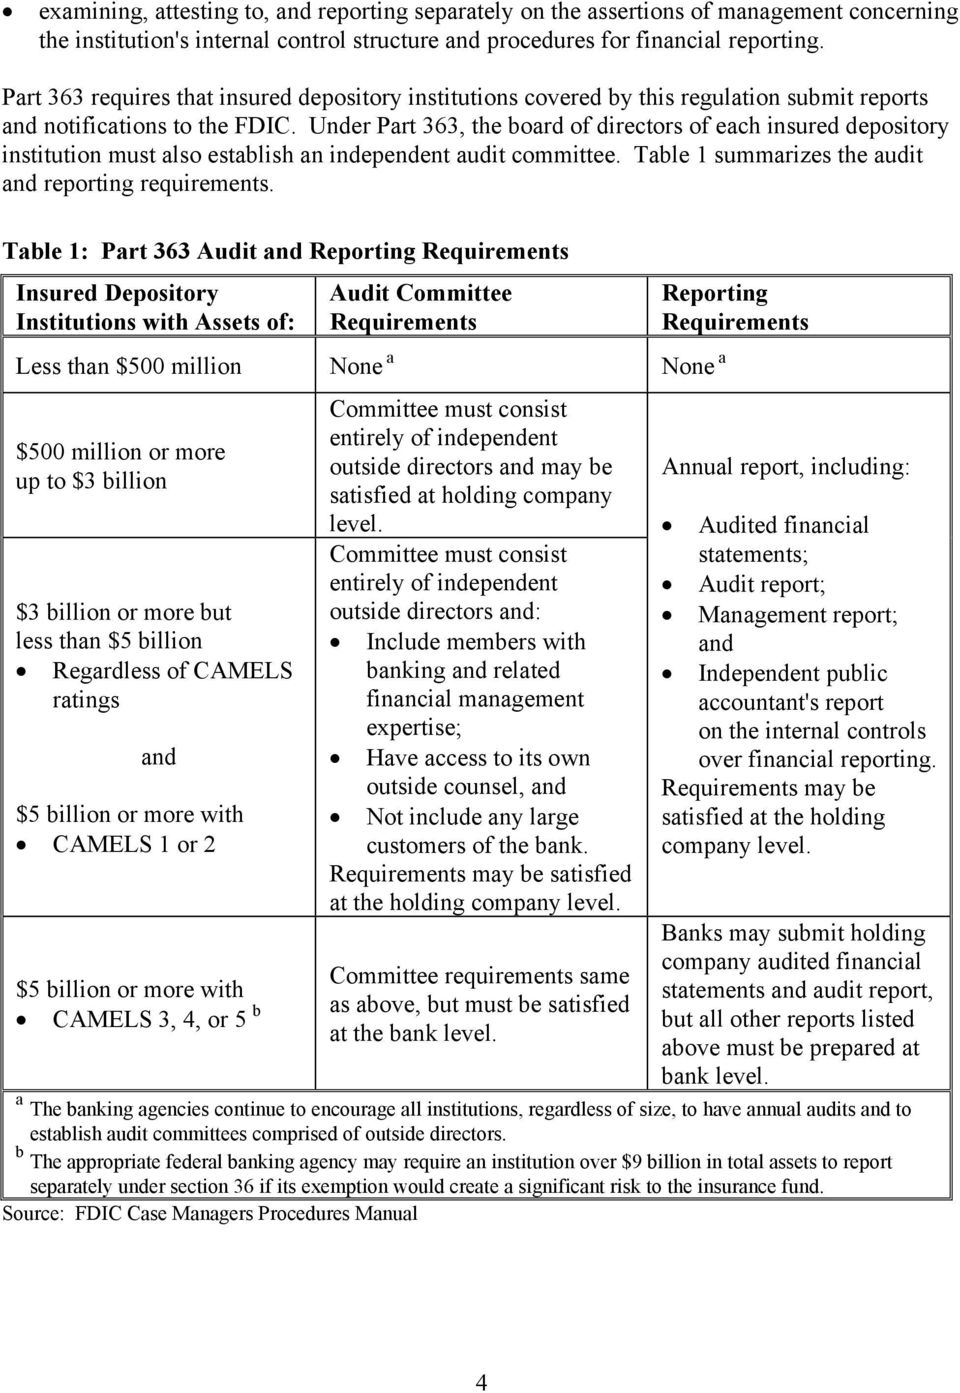 Under Part 363, the board of directors of each insured depository institution must also establish an independent audit committee. Table 1 summarizes the audit and reporting requirements.